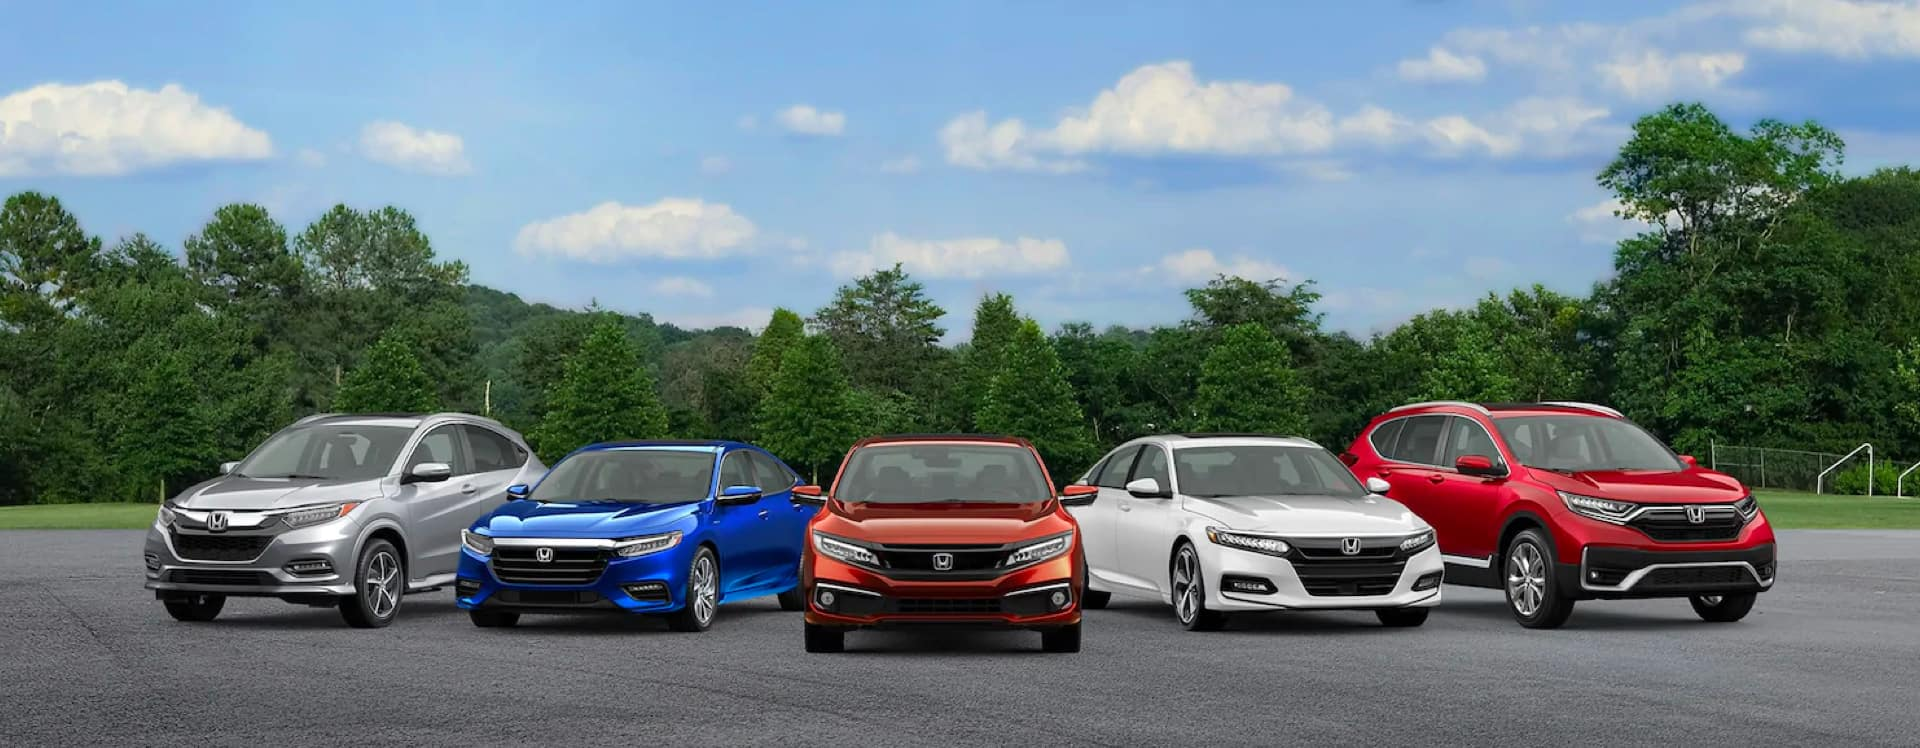 selection of honda vehicles